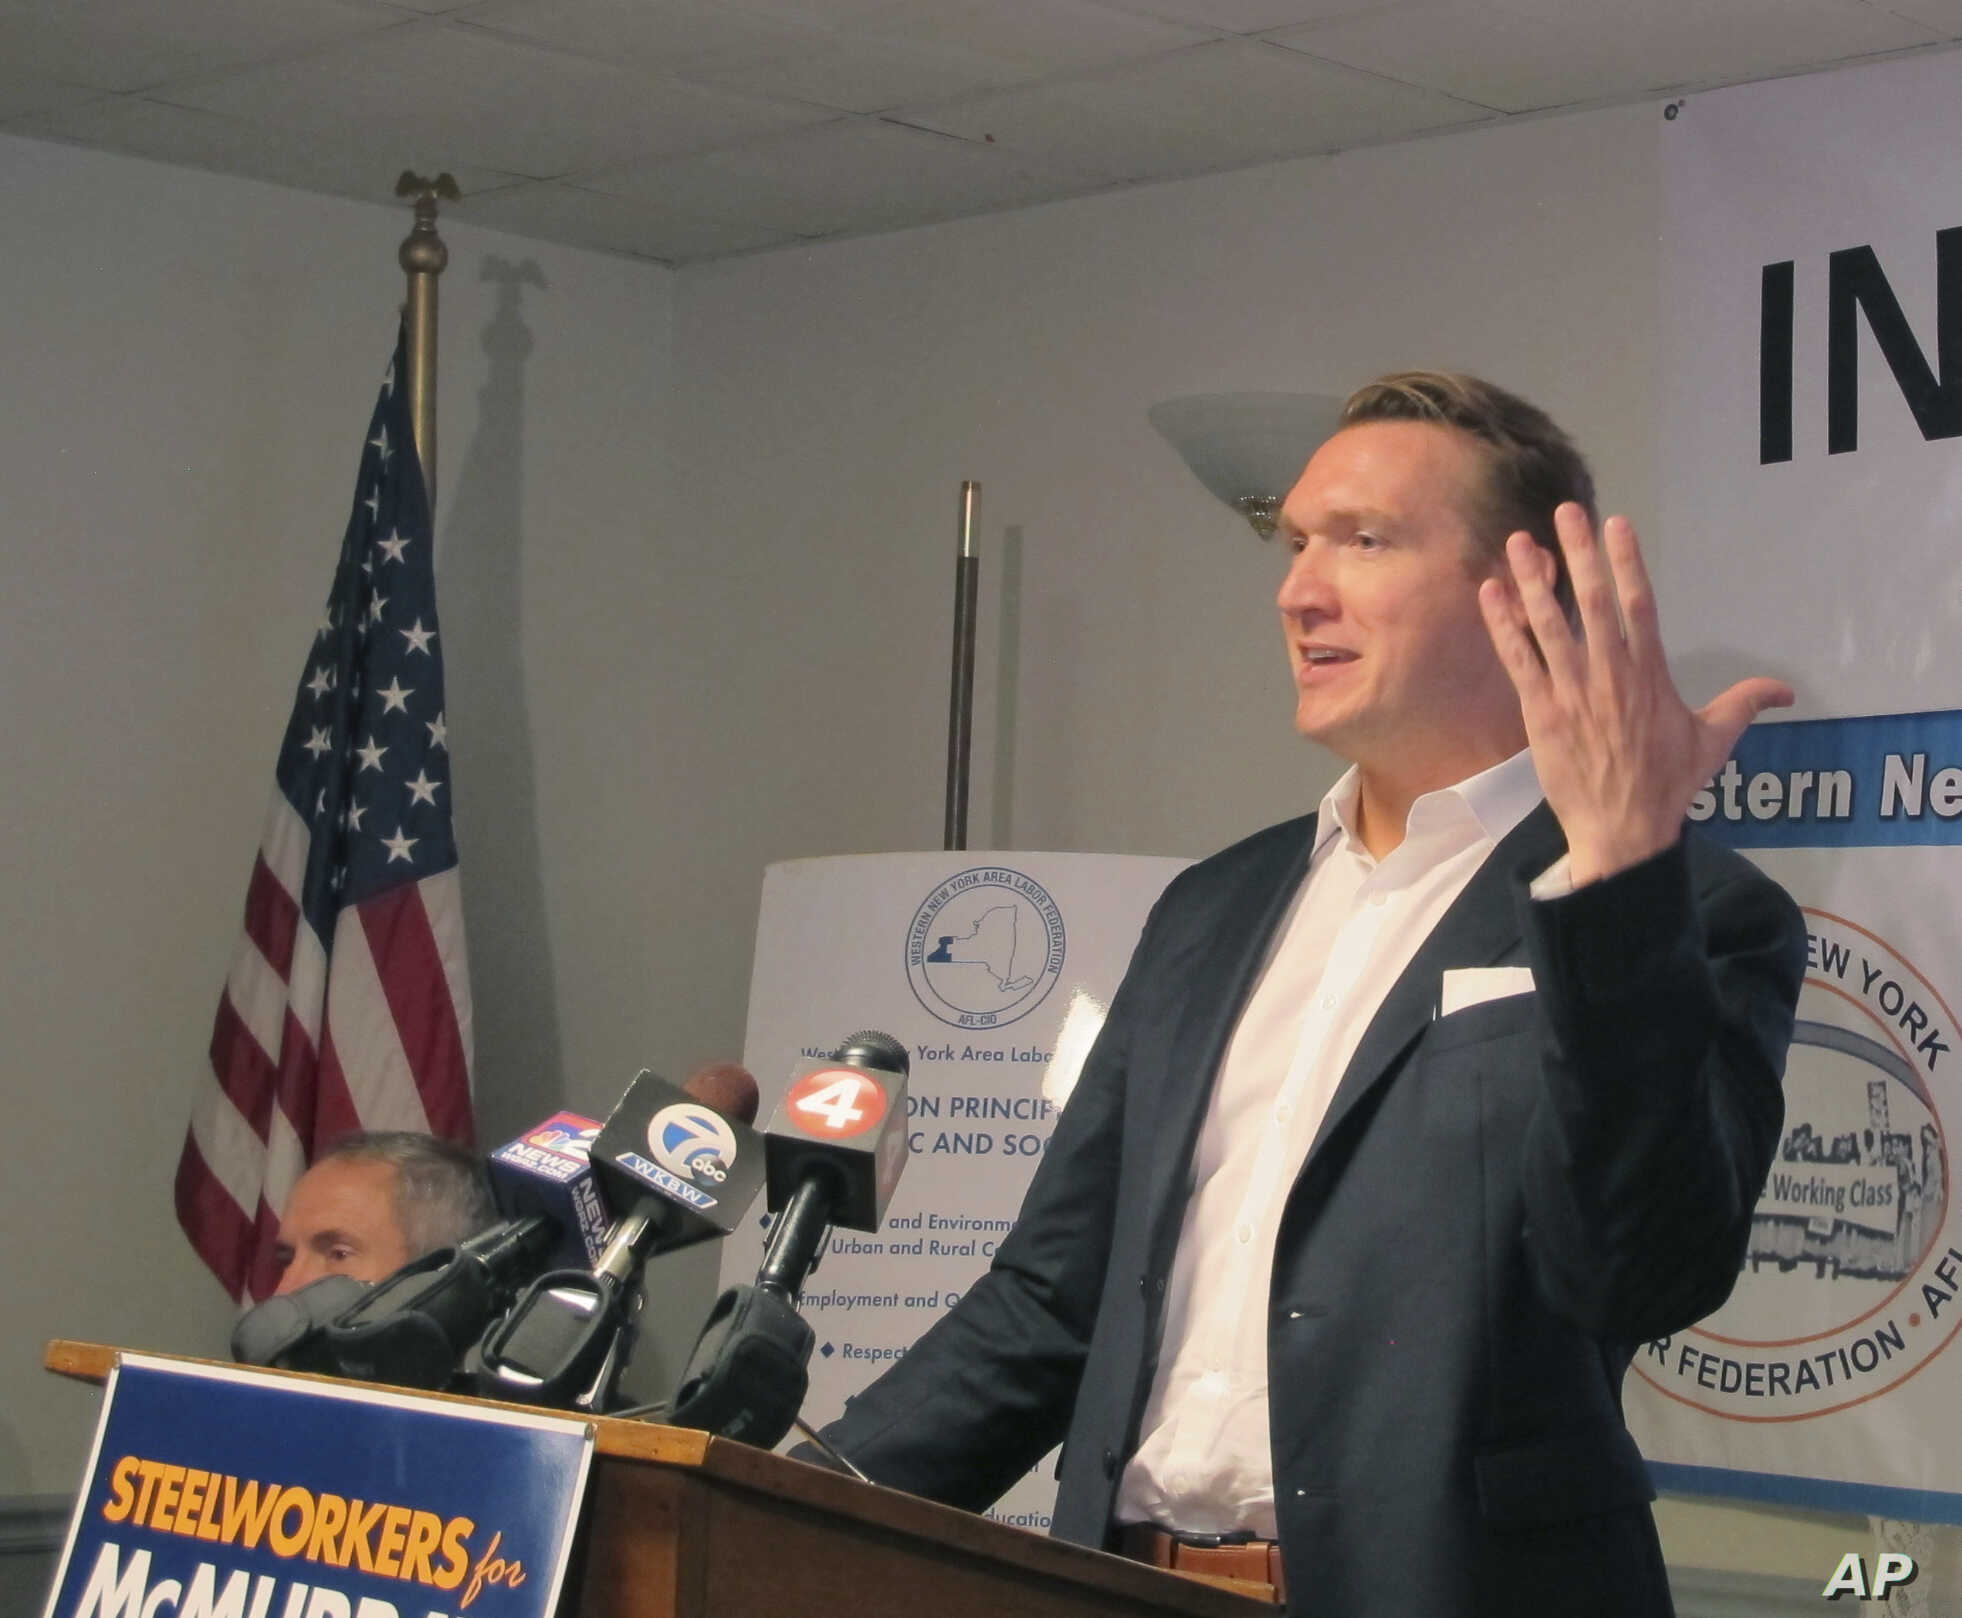 Democratic congressional candidate Nate McMurray speaks to union members at United Steelworkers Local 2603 in Blasdell, N.Y., Oct. 11, 2018.